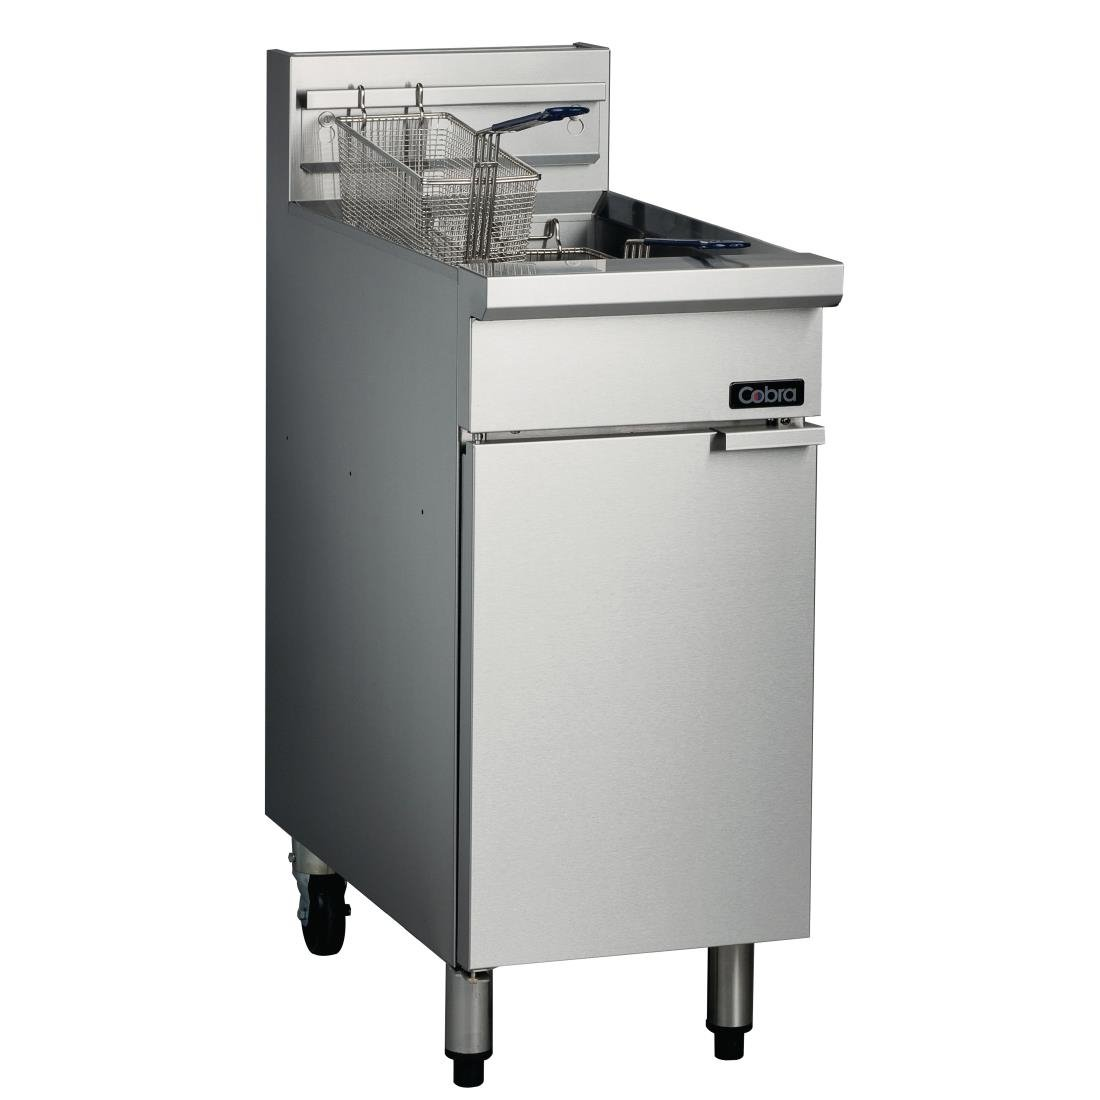 Blue Seal Cobra Single Tank Twin Basket Free Standing Natural Gas Fryer CF2